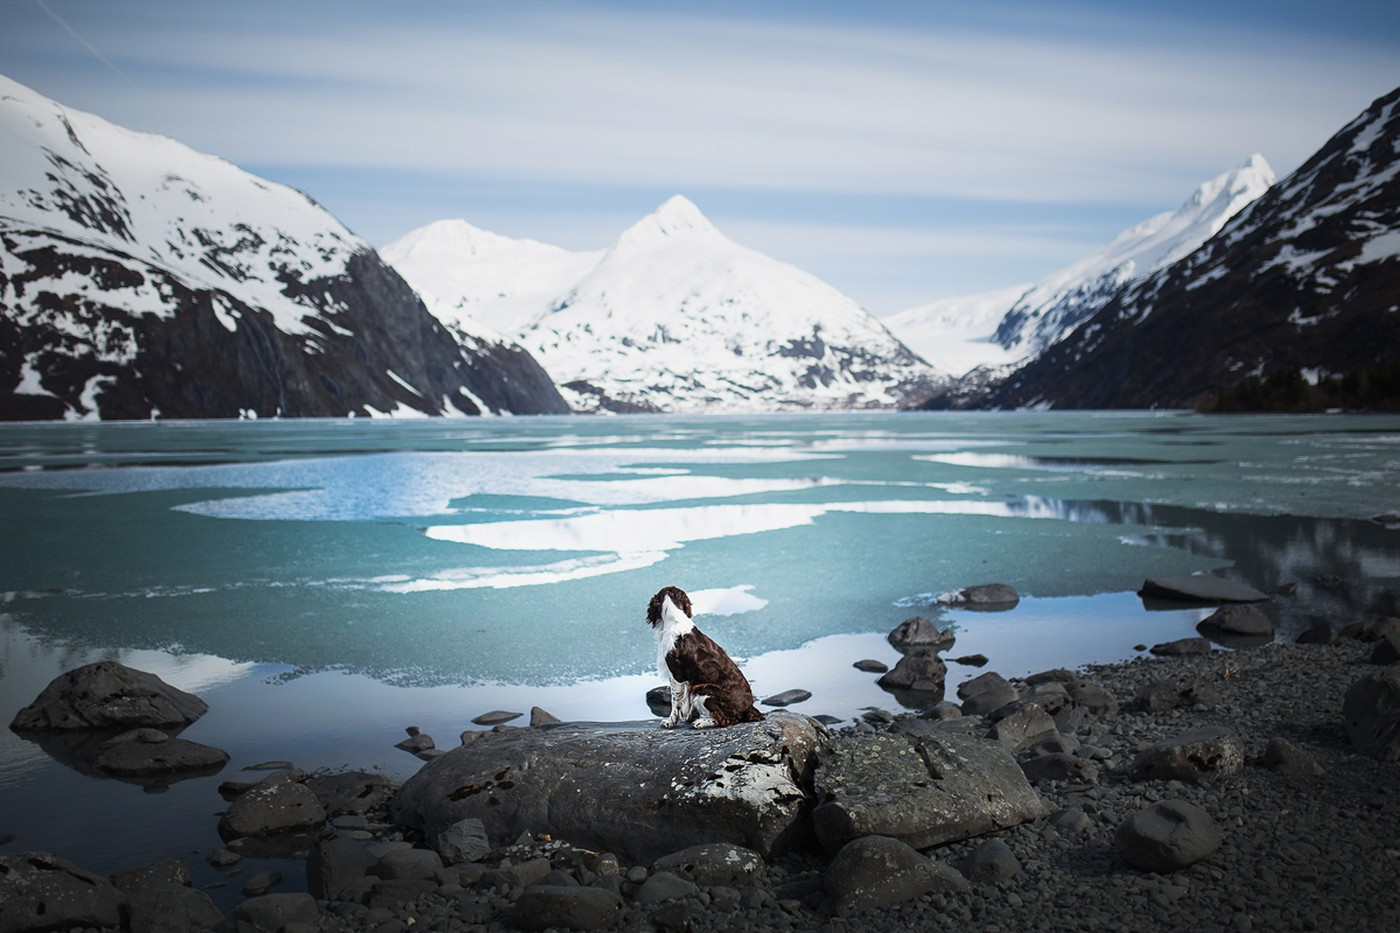 Iceland, Norway, Alaska and more – Here are photos of dogs in mindblowing landscapes